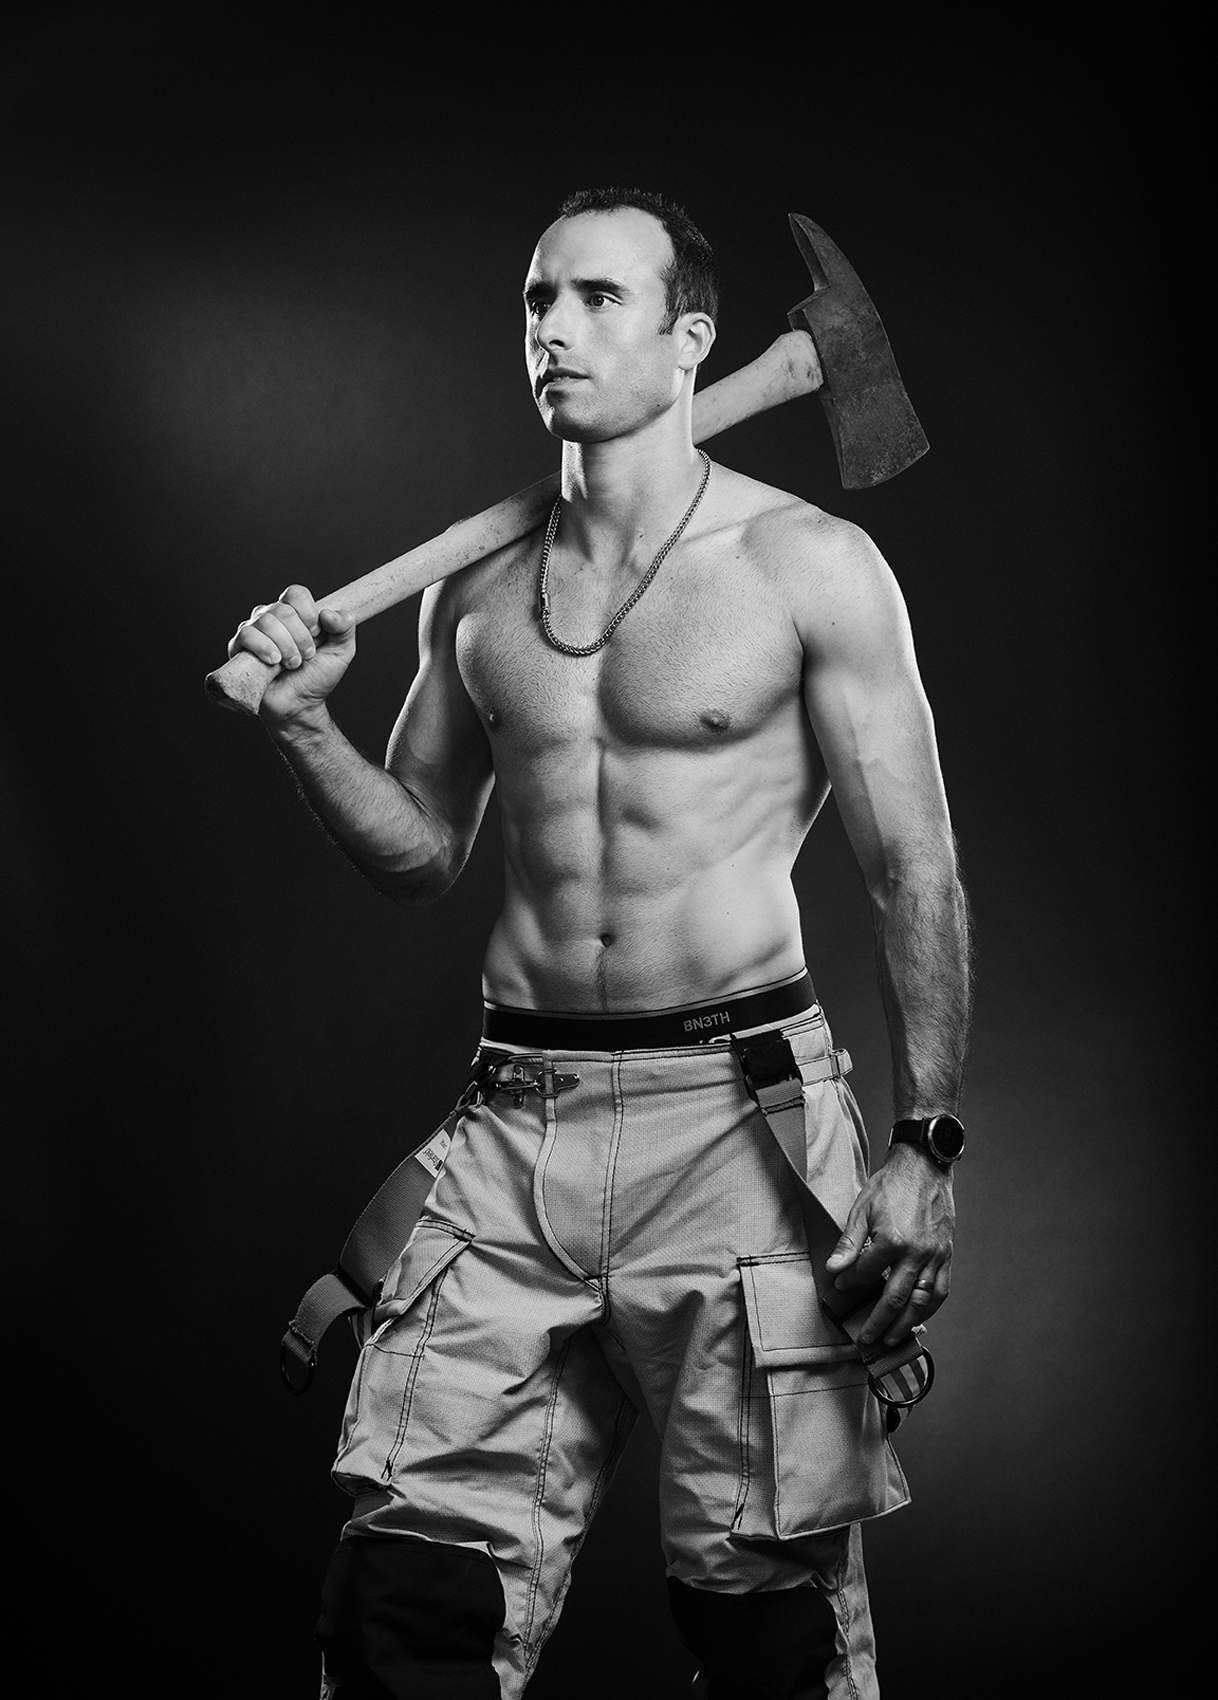 HOF-Hall-of-Flame-Calender-Erich-Saide-Vancouver-Portrait-Photographer-Firefighters-First-Responders-Hot-Hero-June-Facundo